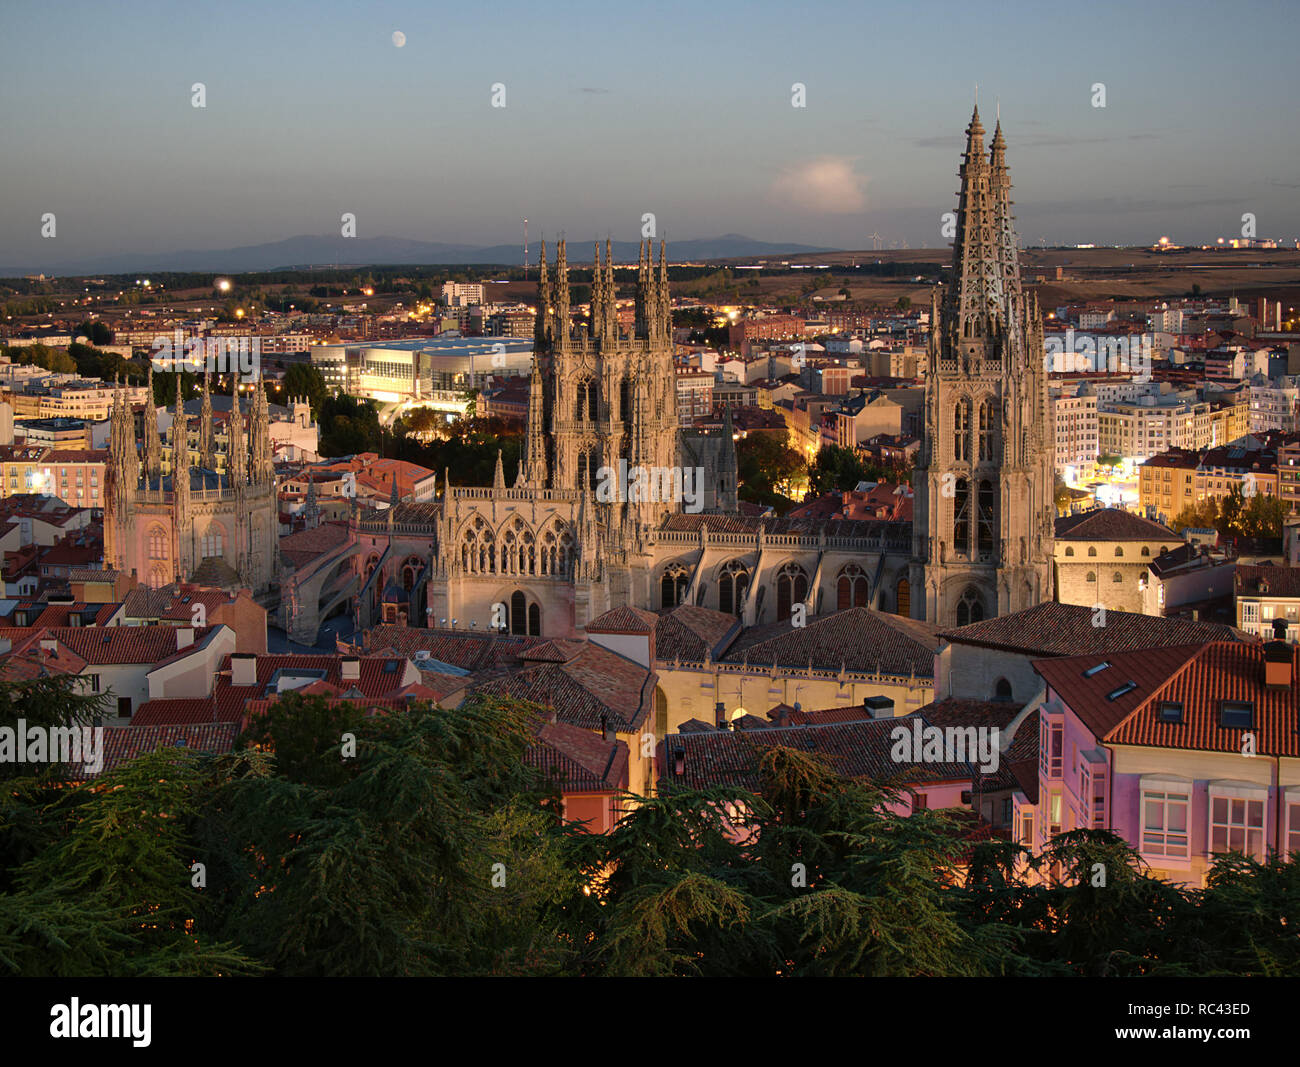 Time-blended sunset/night view over the city and cathedral of Burgos in Spain - Stock Image